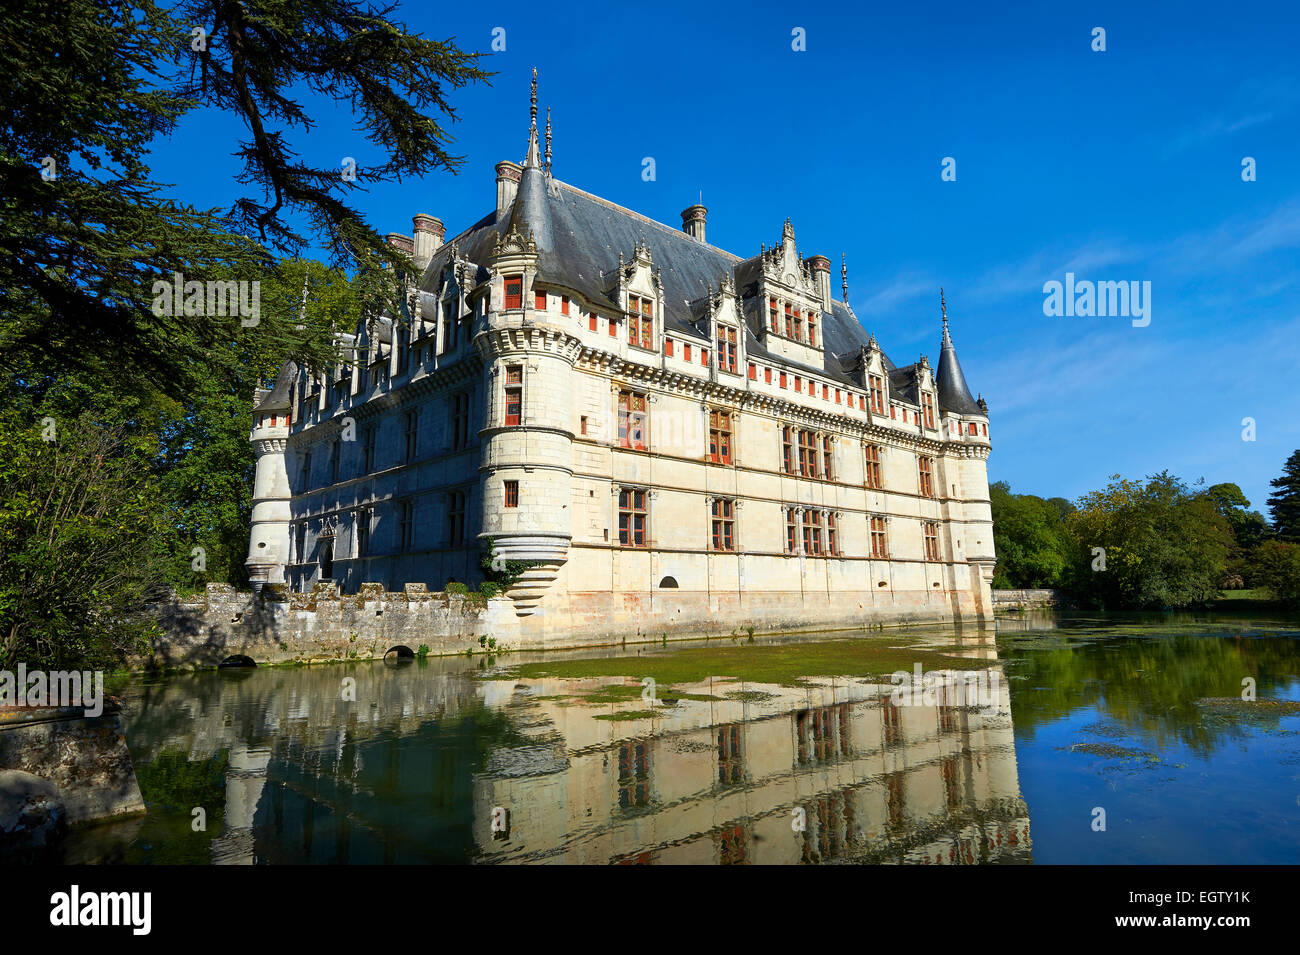 Exterior of the Renaissance Château d'Azay-le-Rideau with its moat, built between 1518 and 1527,Loire Valley, - Stock Image